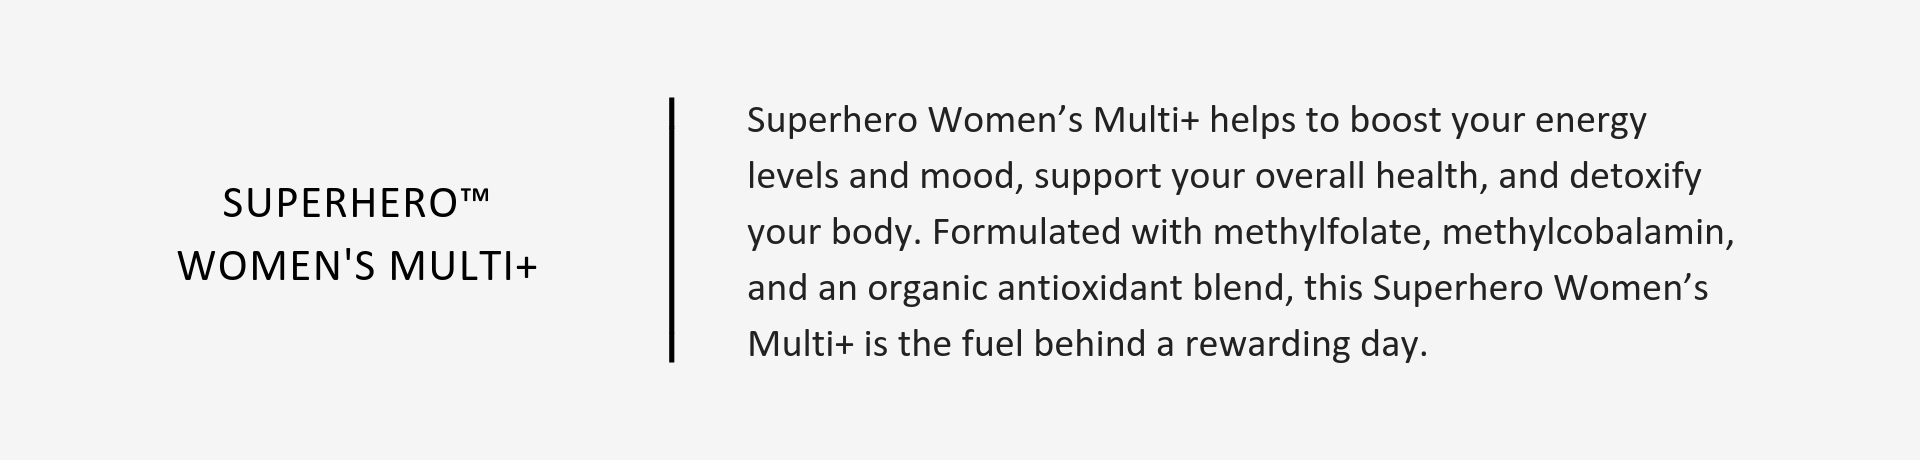 Superhero™ Women's Multi+ helps to boost your energy levels and mood, support your overall health, and detoxify your body.